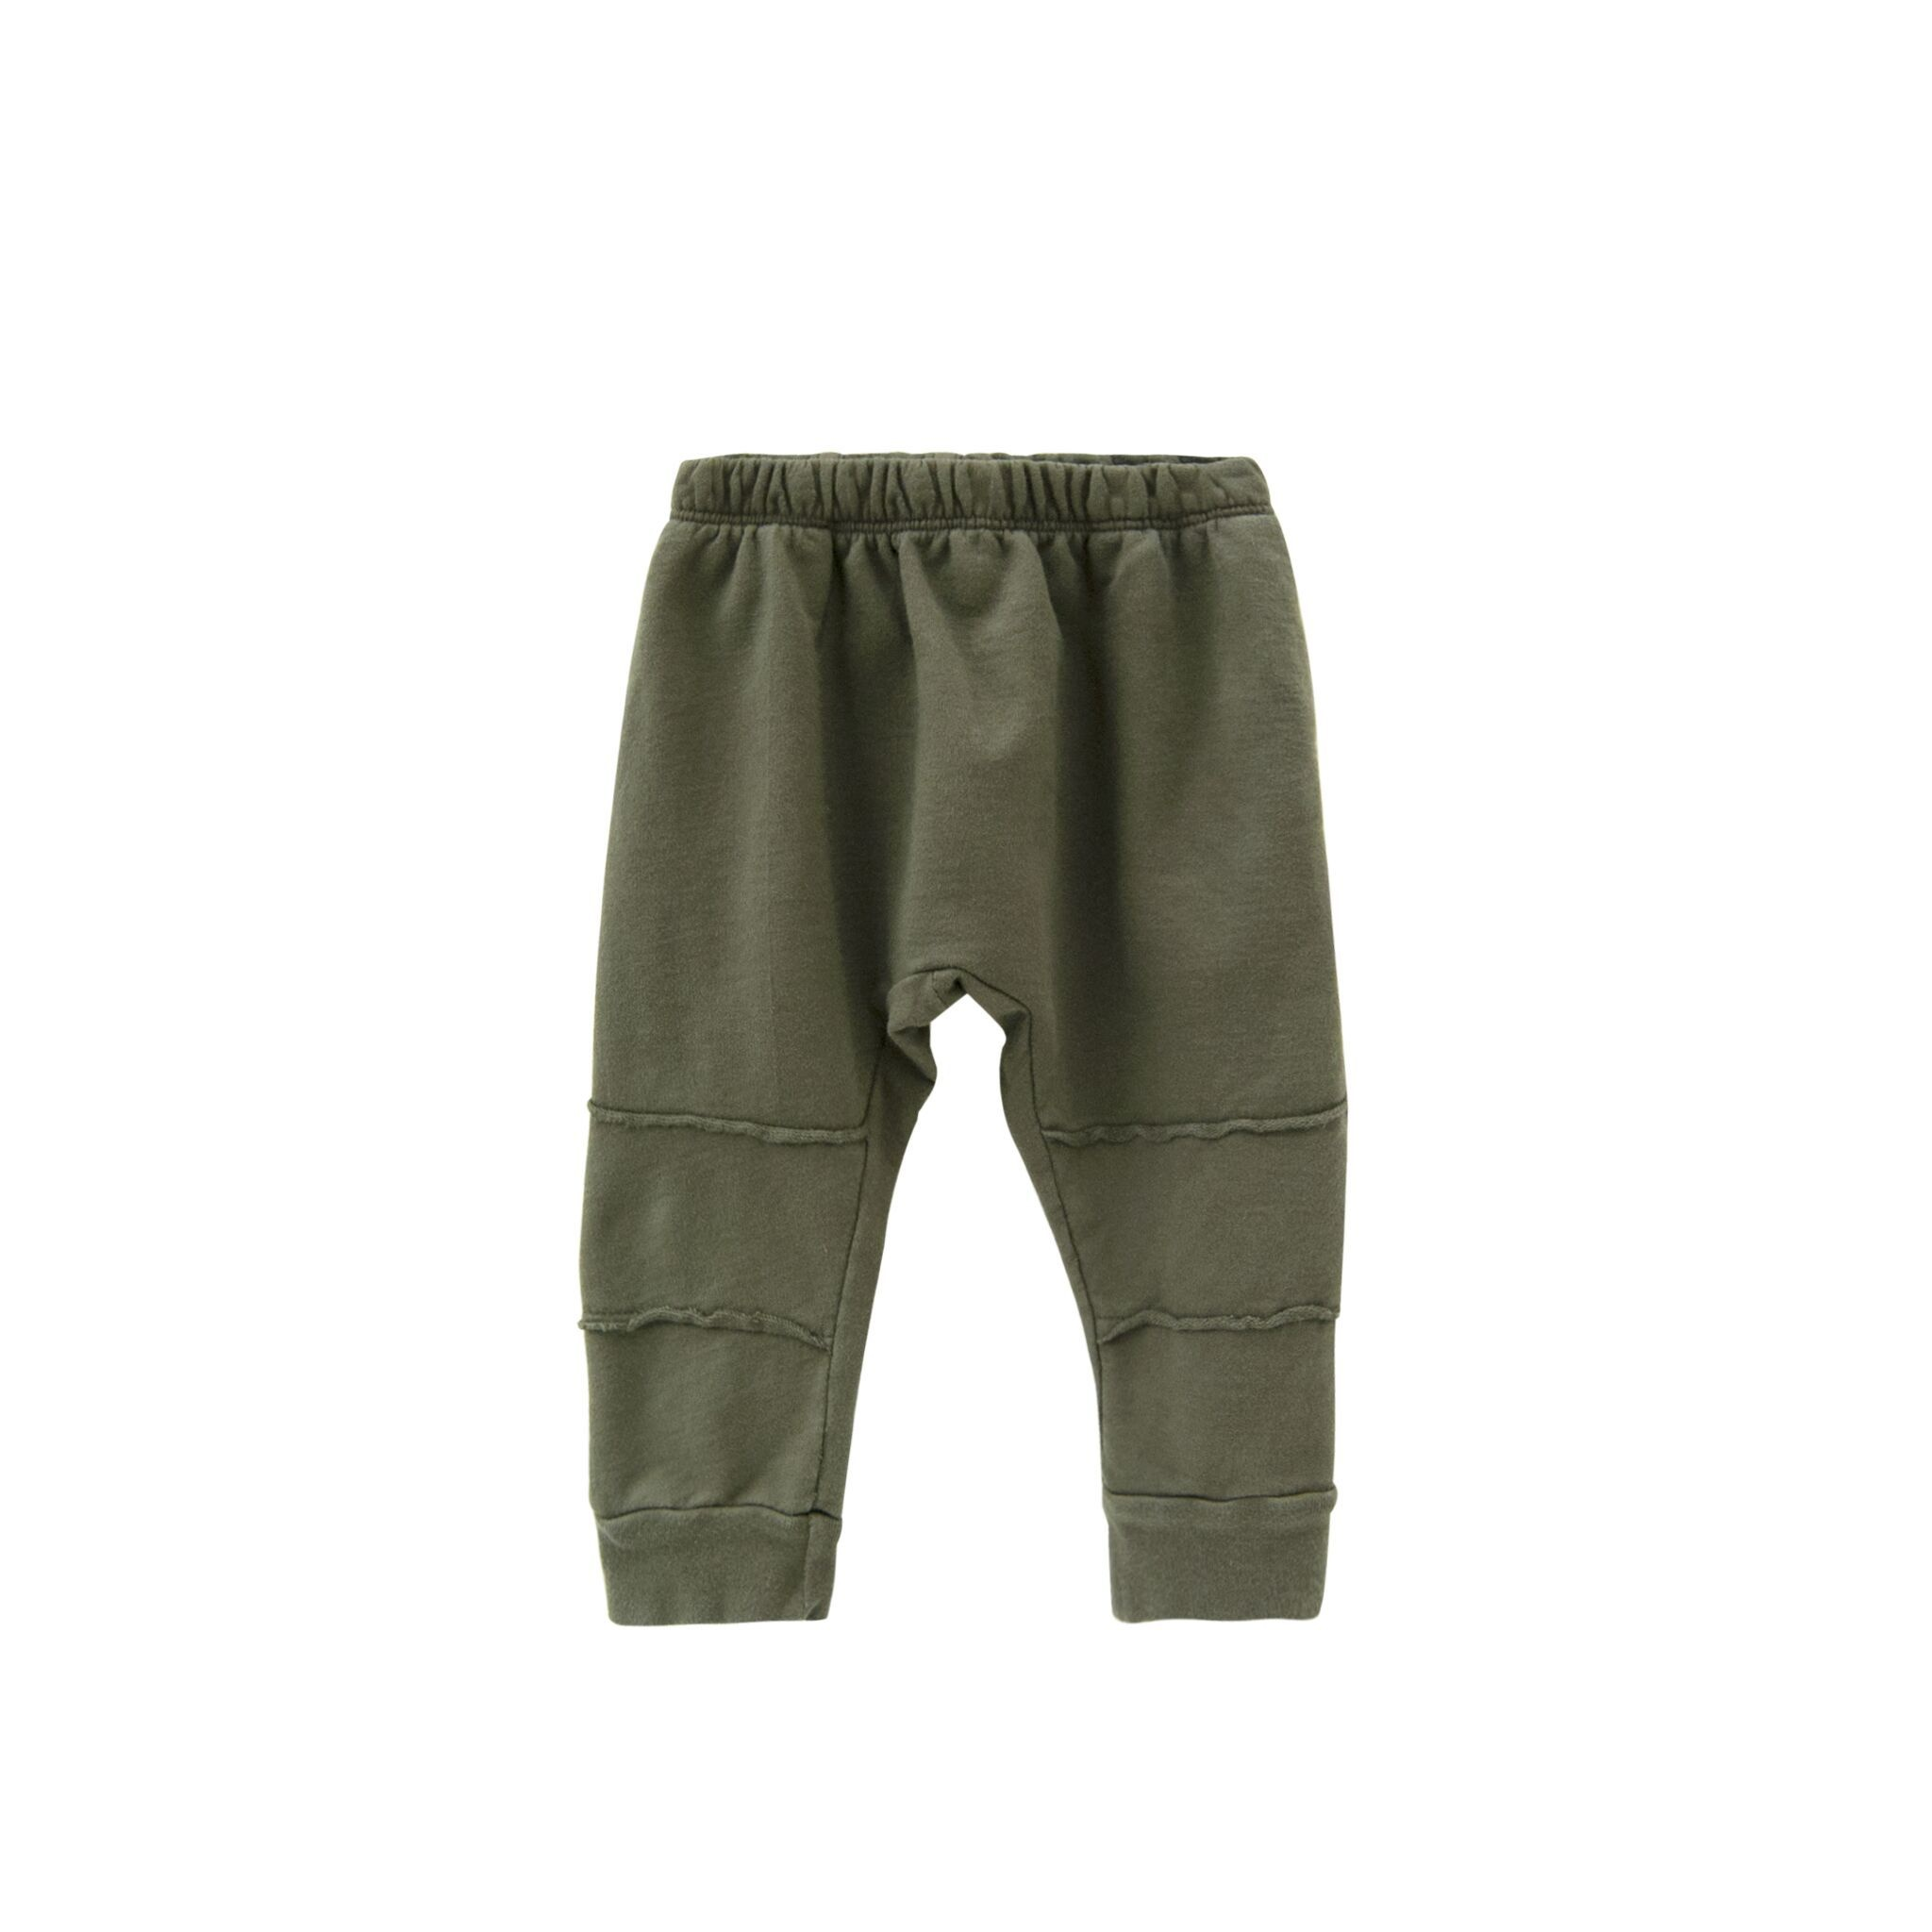 GOGENTLYNATION Panel Track Pant